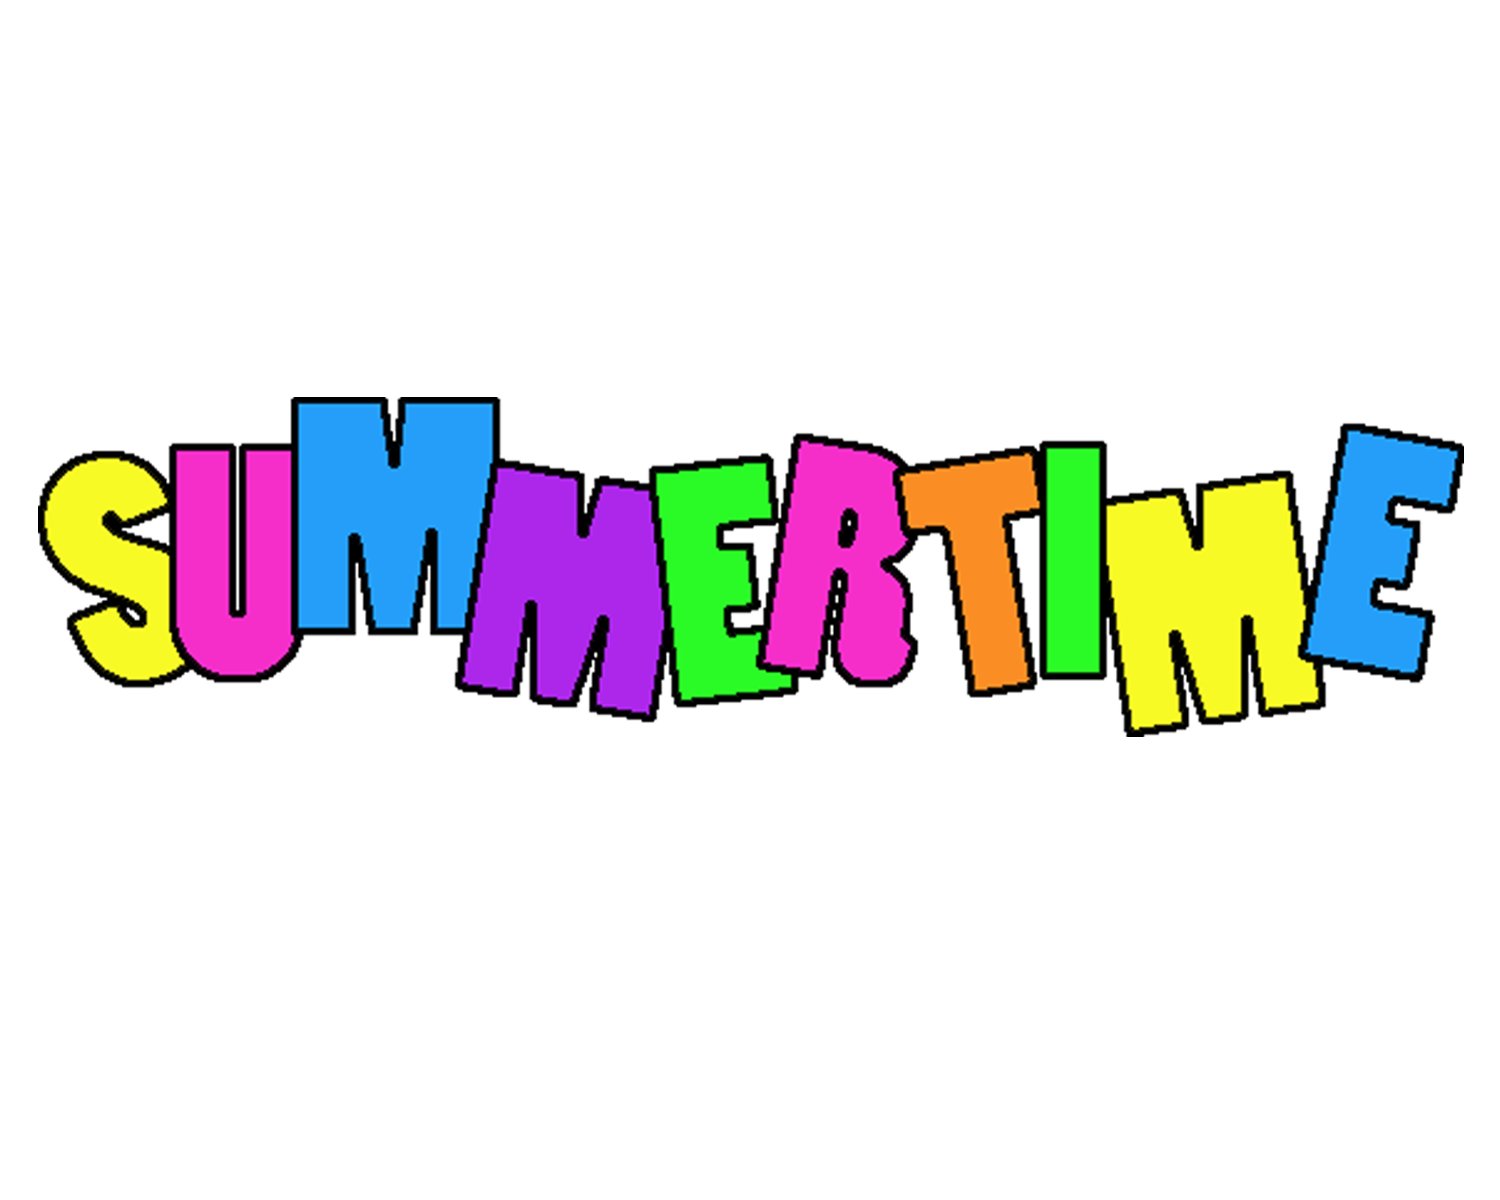 Free summertime background.